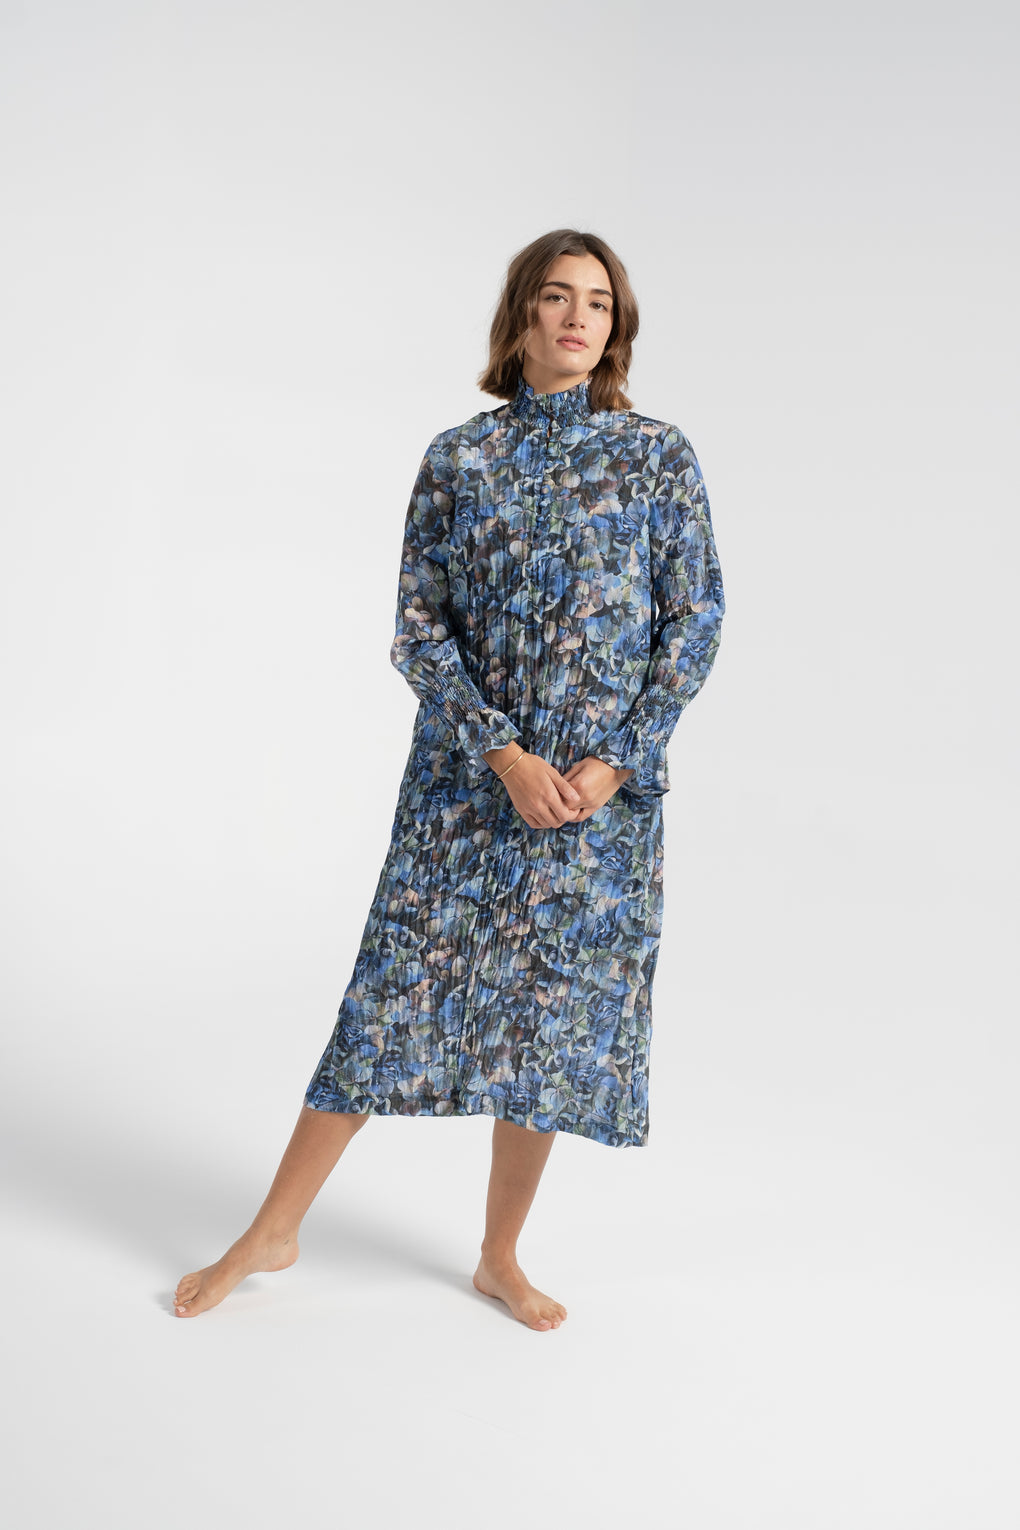 Baum Und Pferdgarten-Baum Und Pferdgarten Aeverie Dress-Aeverie dress-blue dress-fall dress-fall midi dress-turtleneck dress-Idun-St. Paul